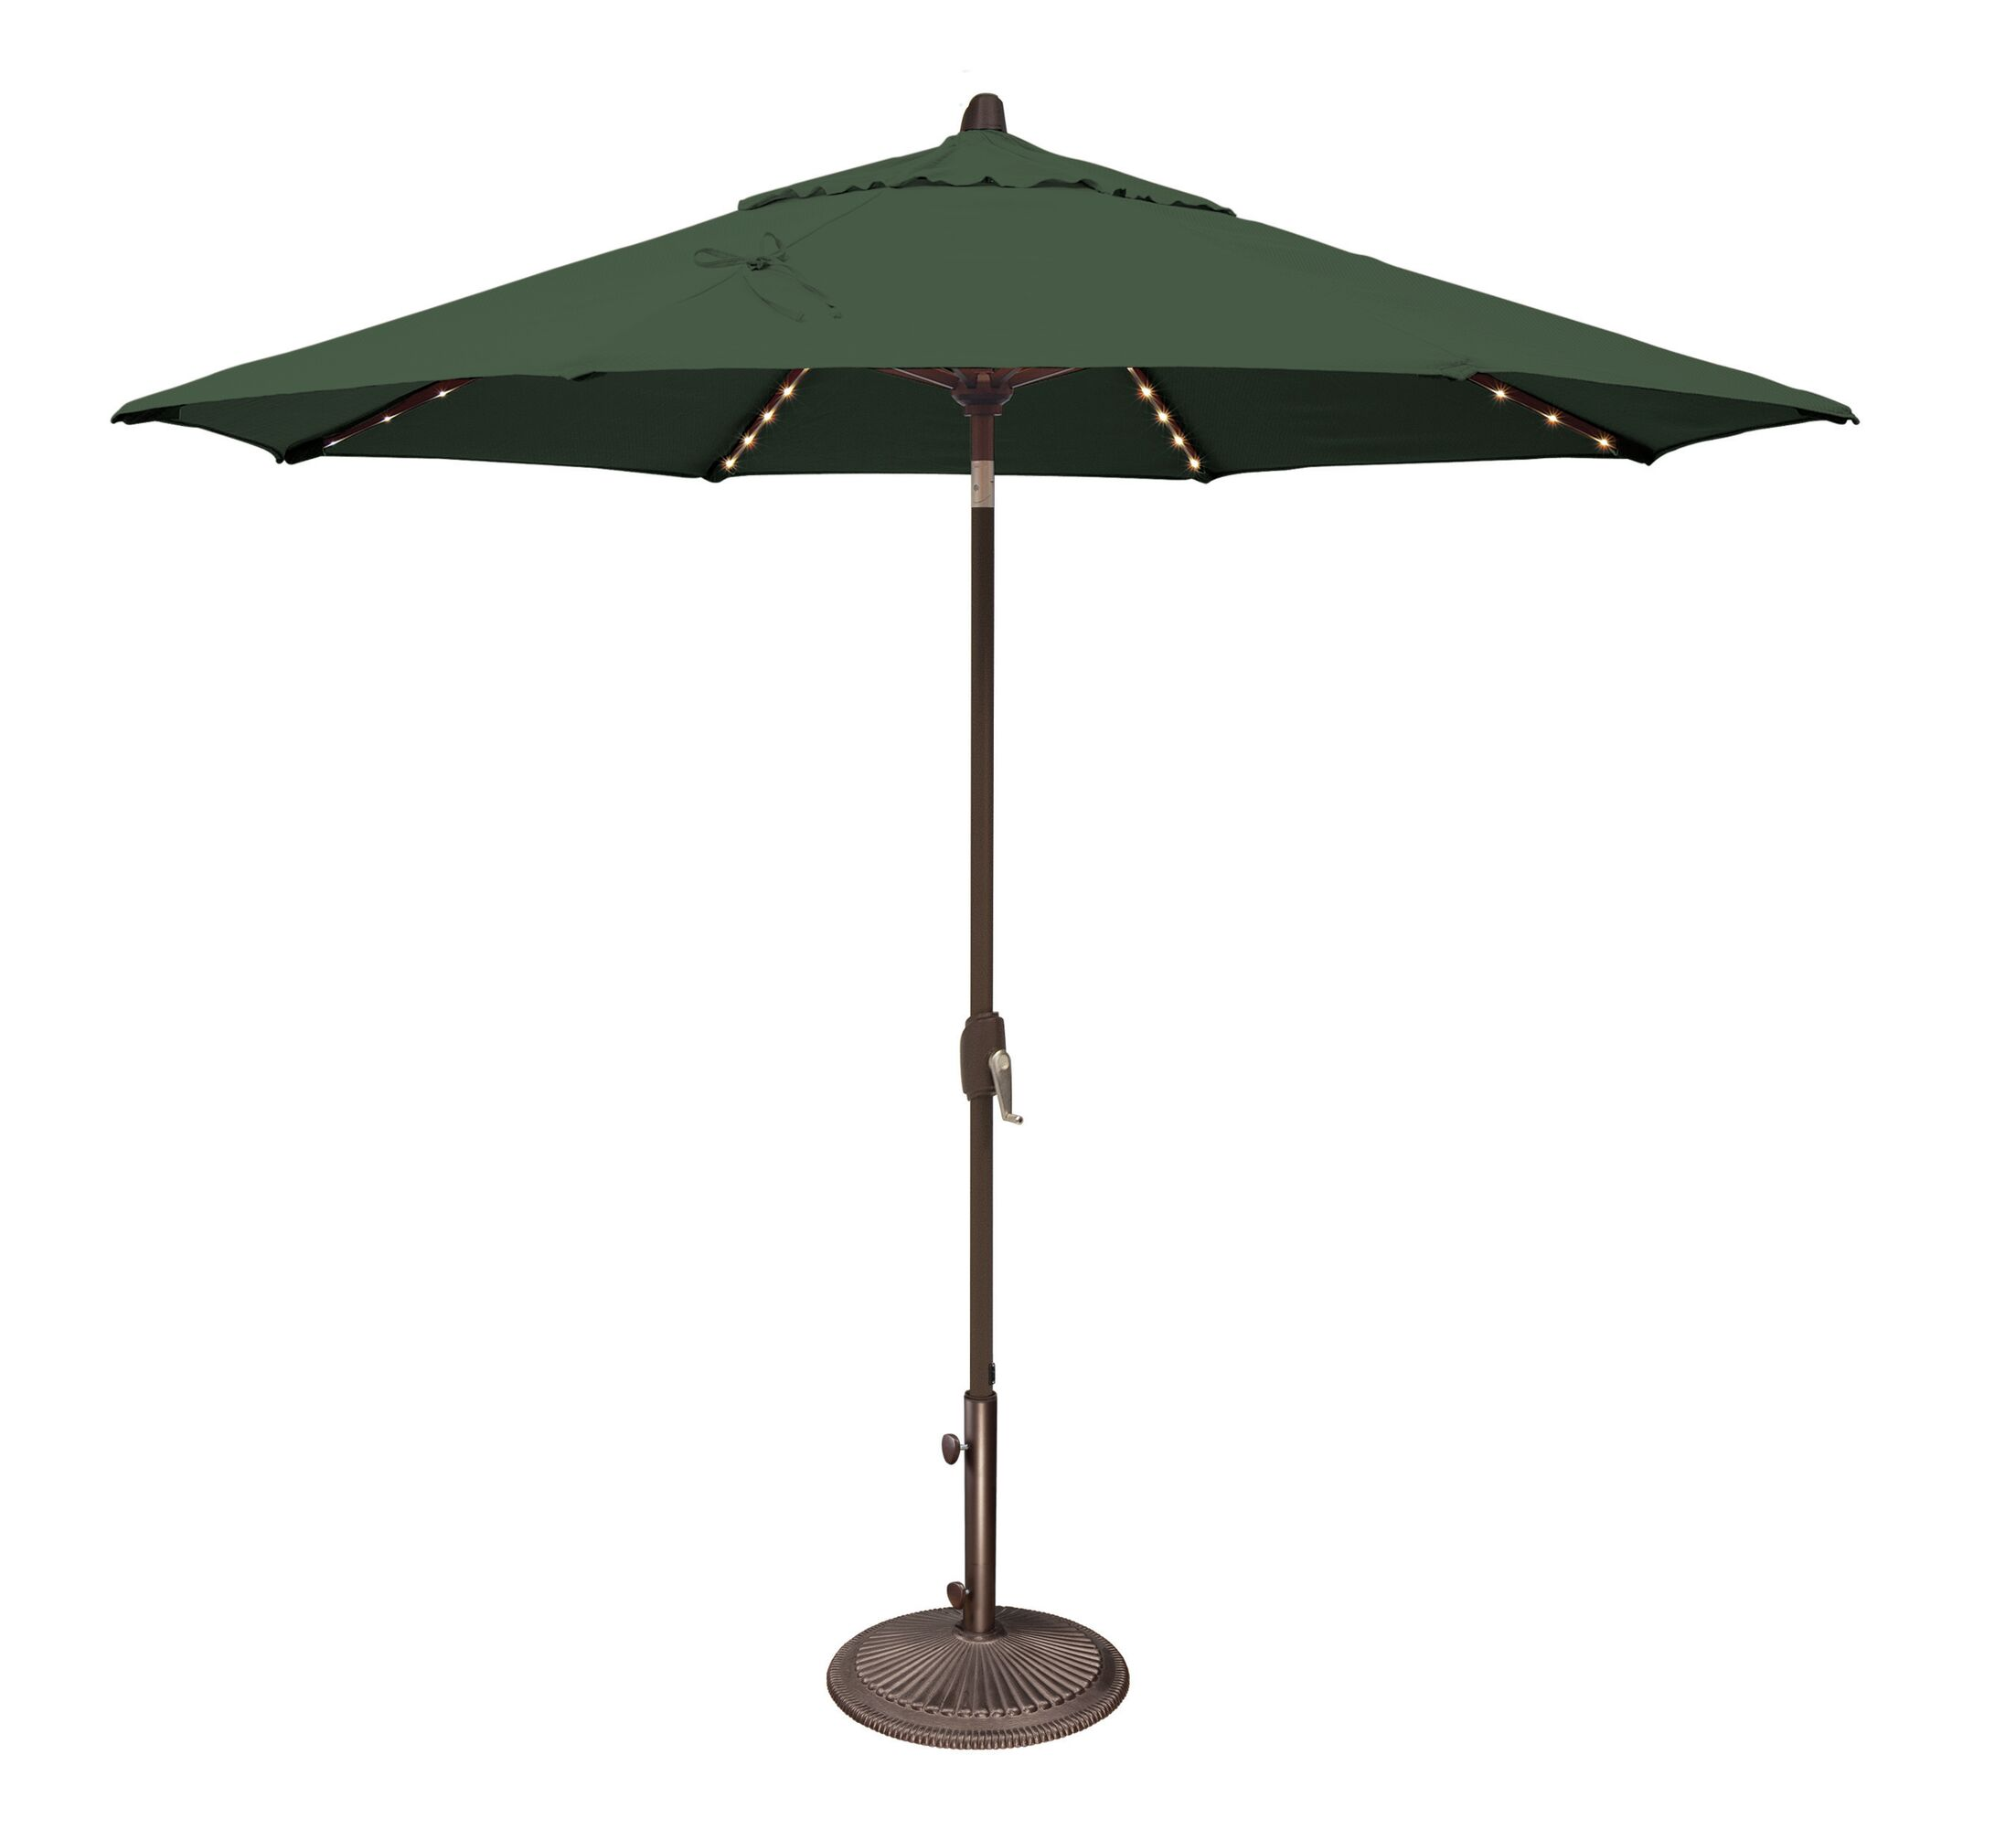 Lanai 9' Lighted Umbrella Fabric: Solefin / Forest Green